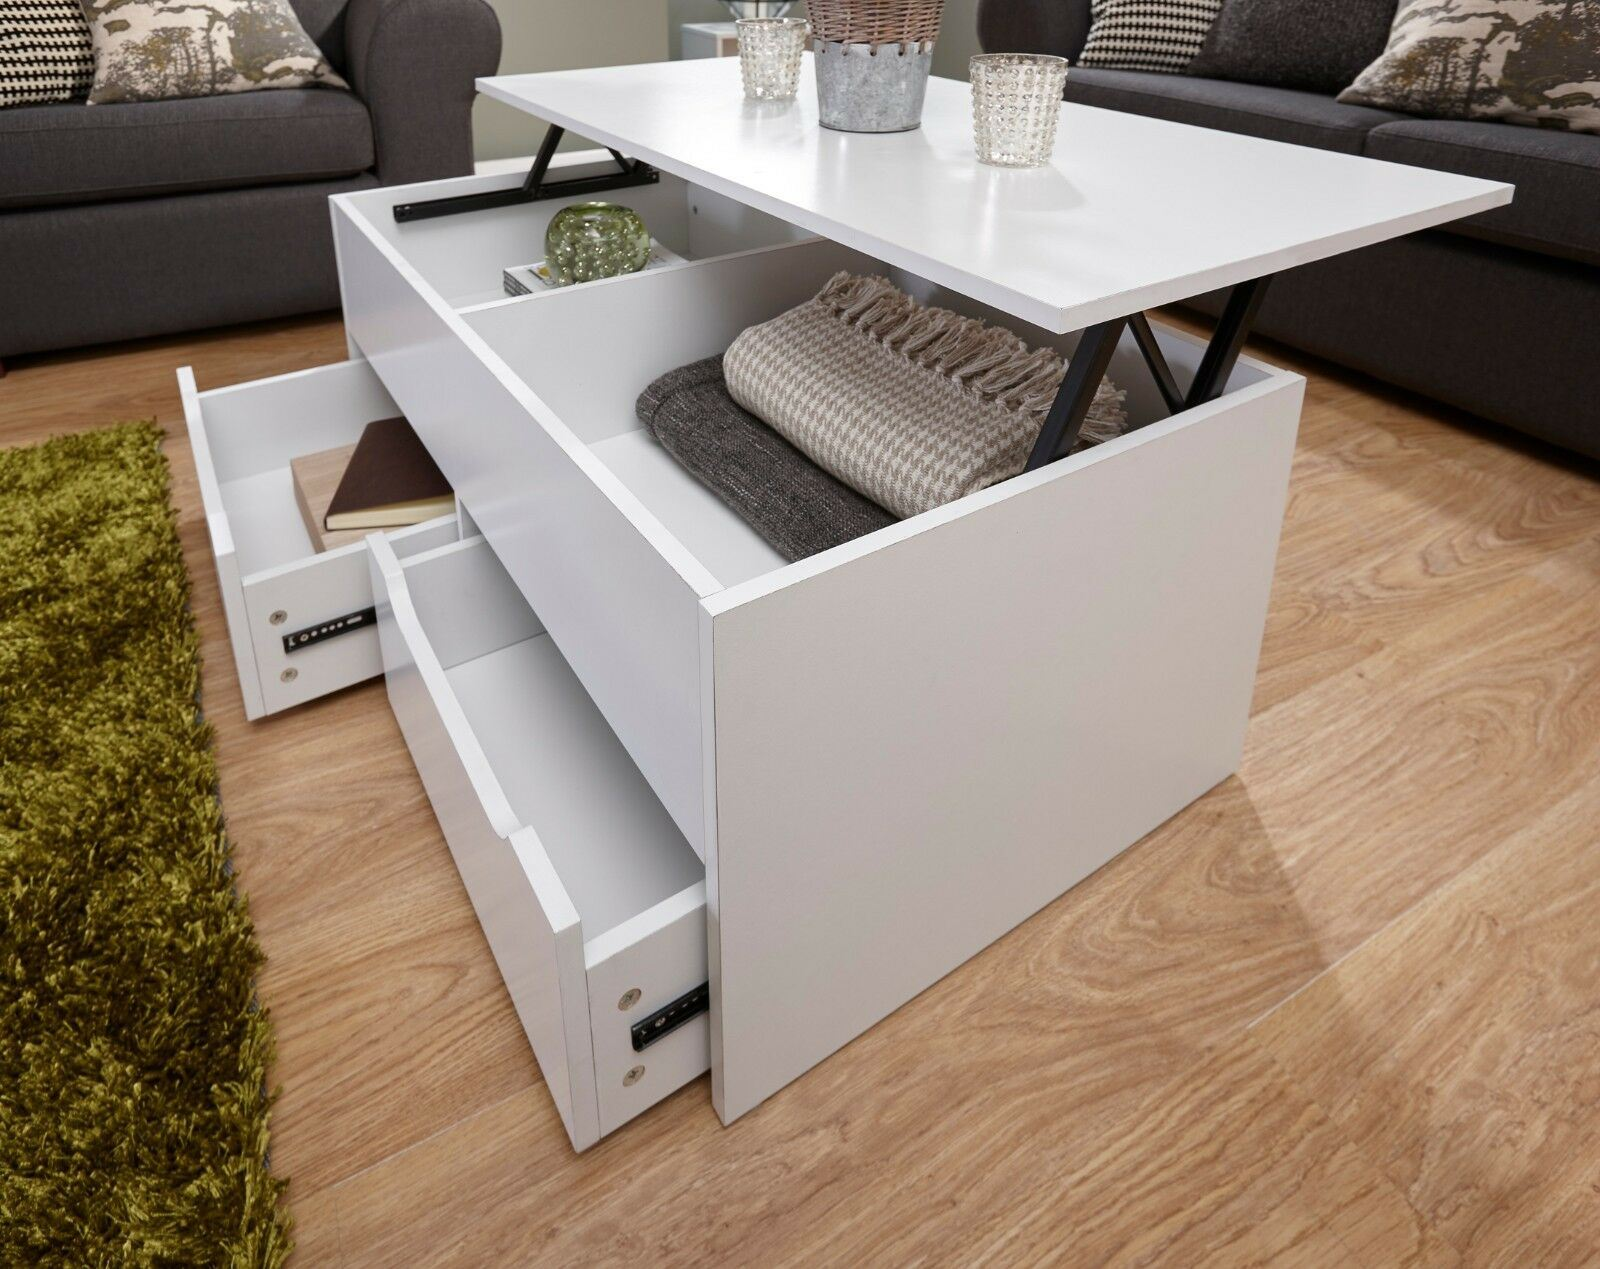 - The Ultimate Storage Coffee Table With 2 Drawers And Lift Up Top